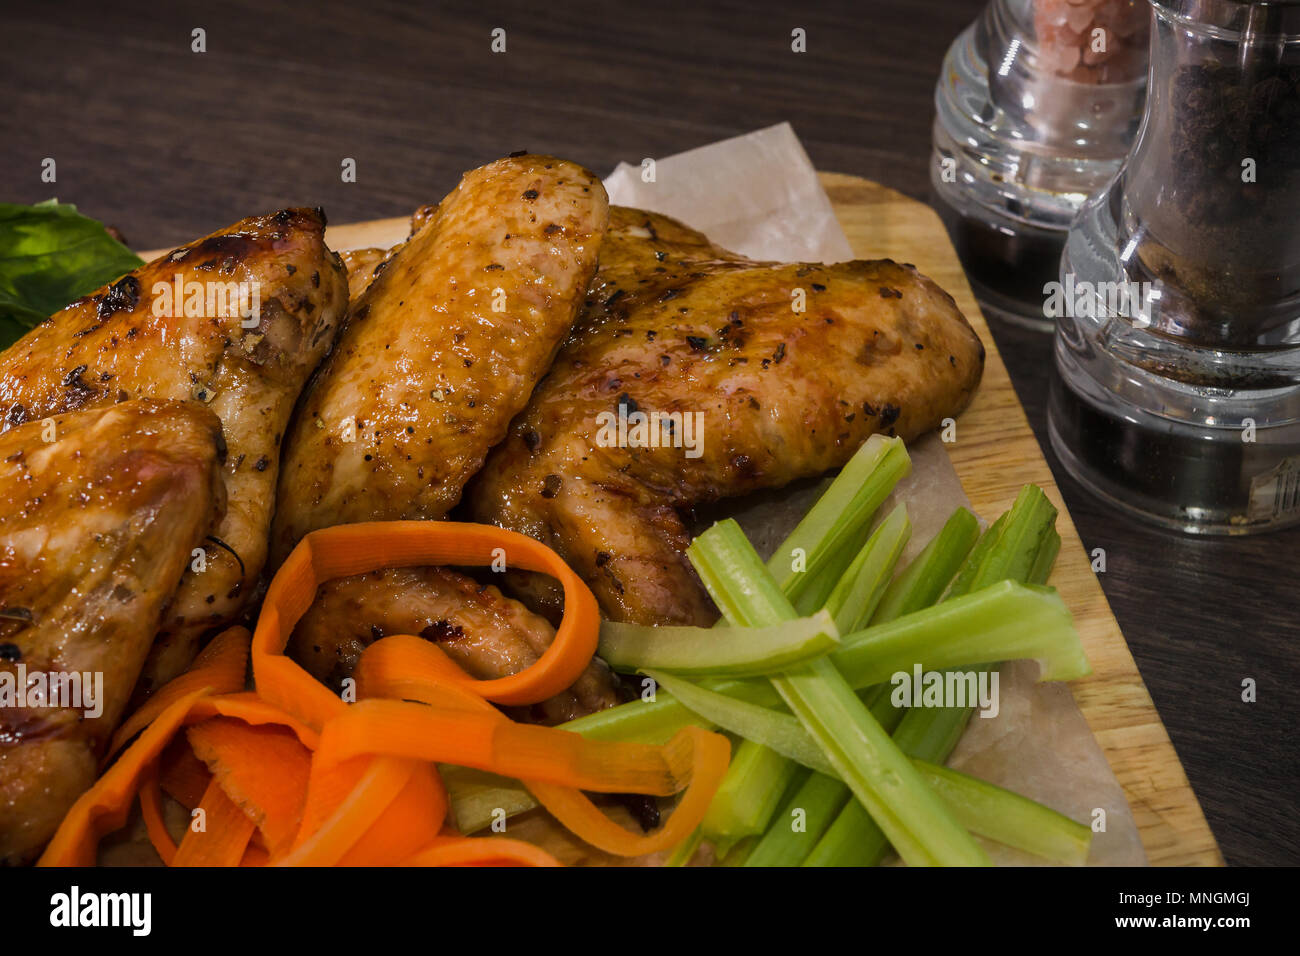 Fried chicken wings with sauce and salad - Stock Image